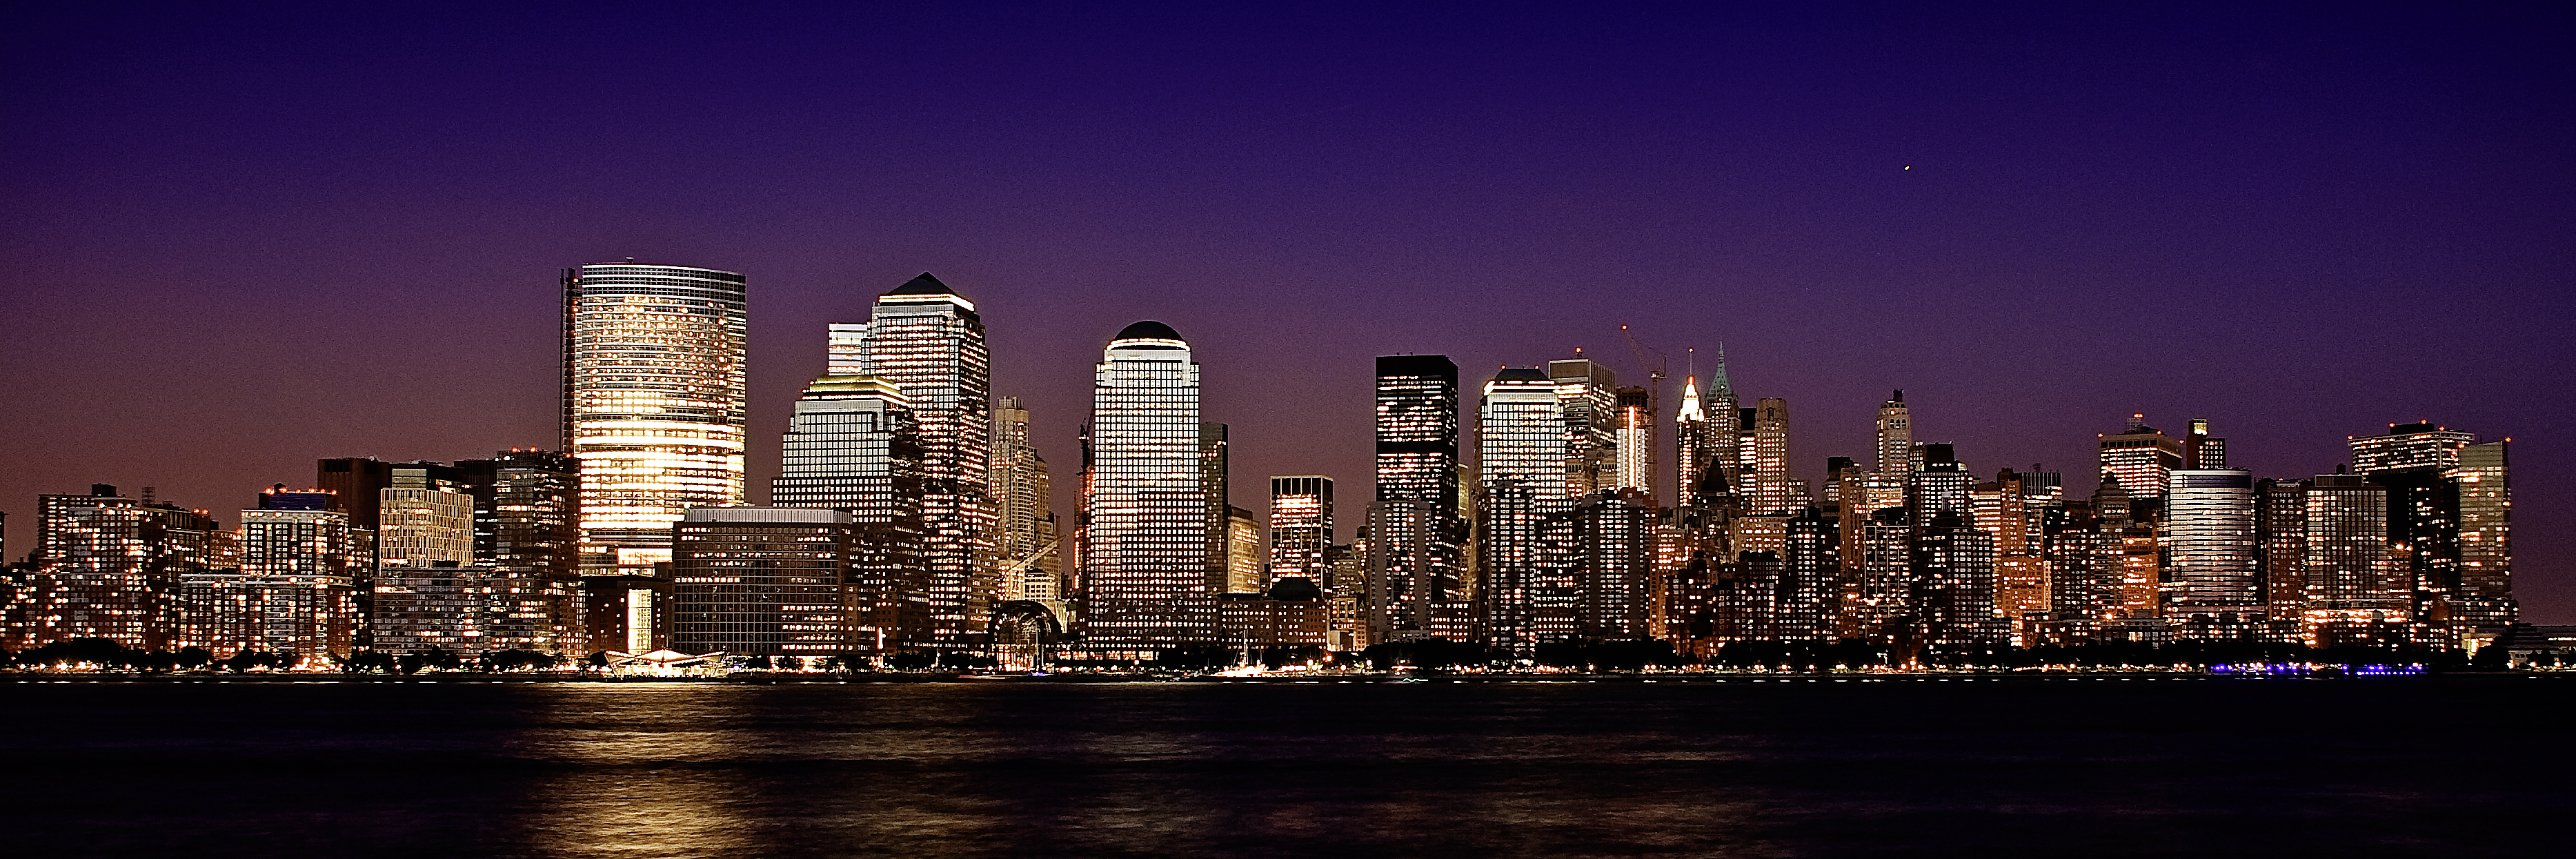 manhattan skyline new - photo #12